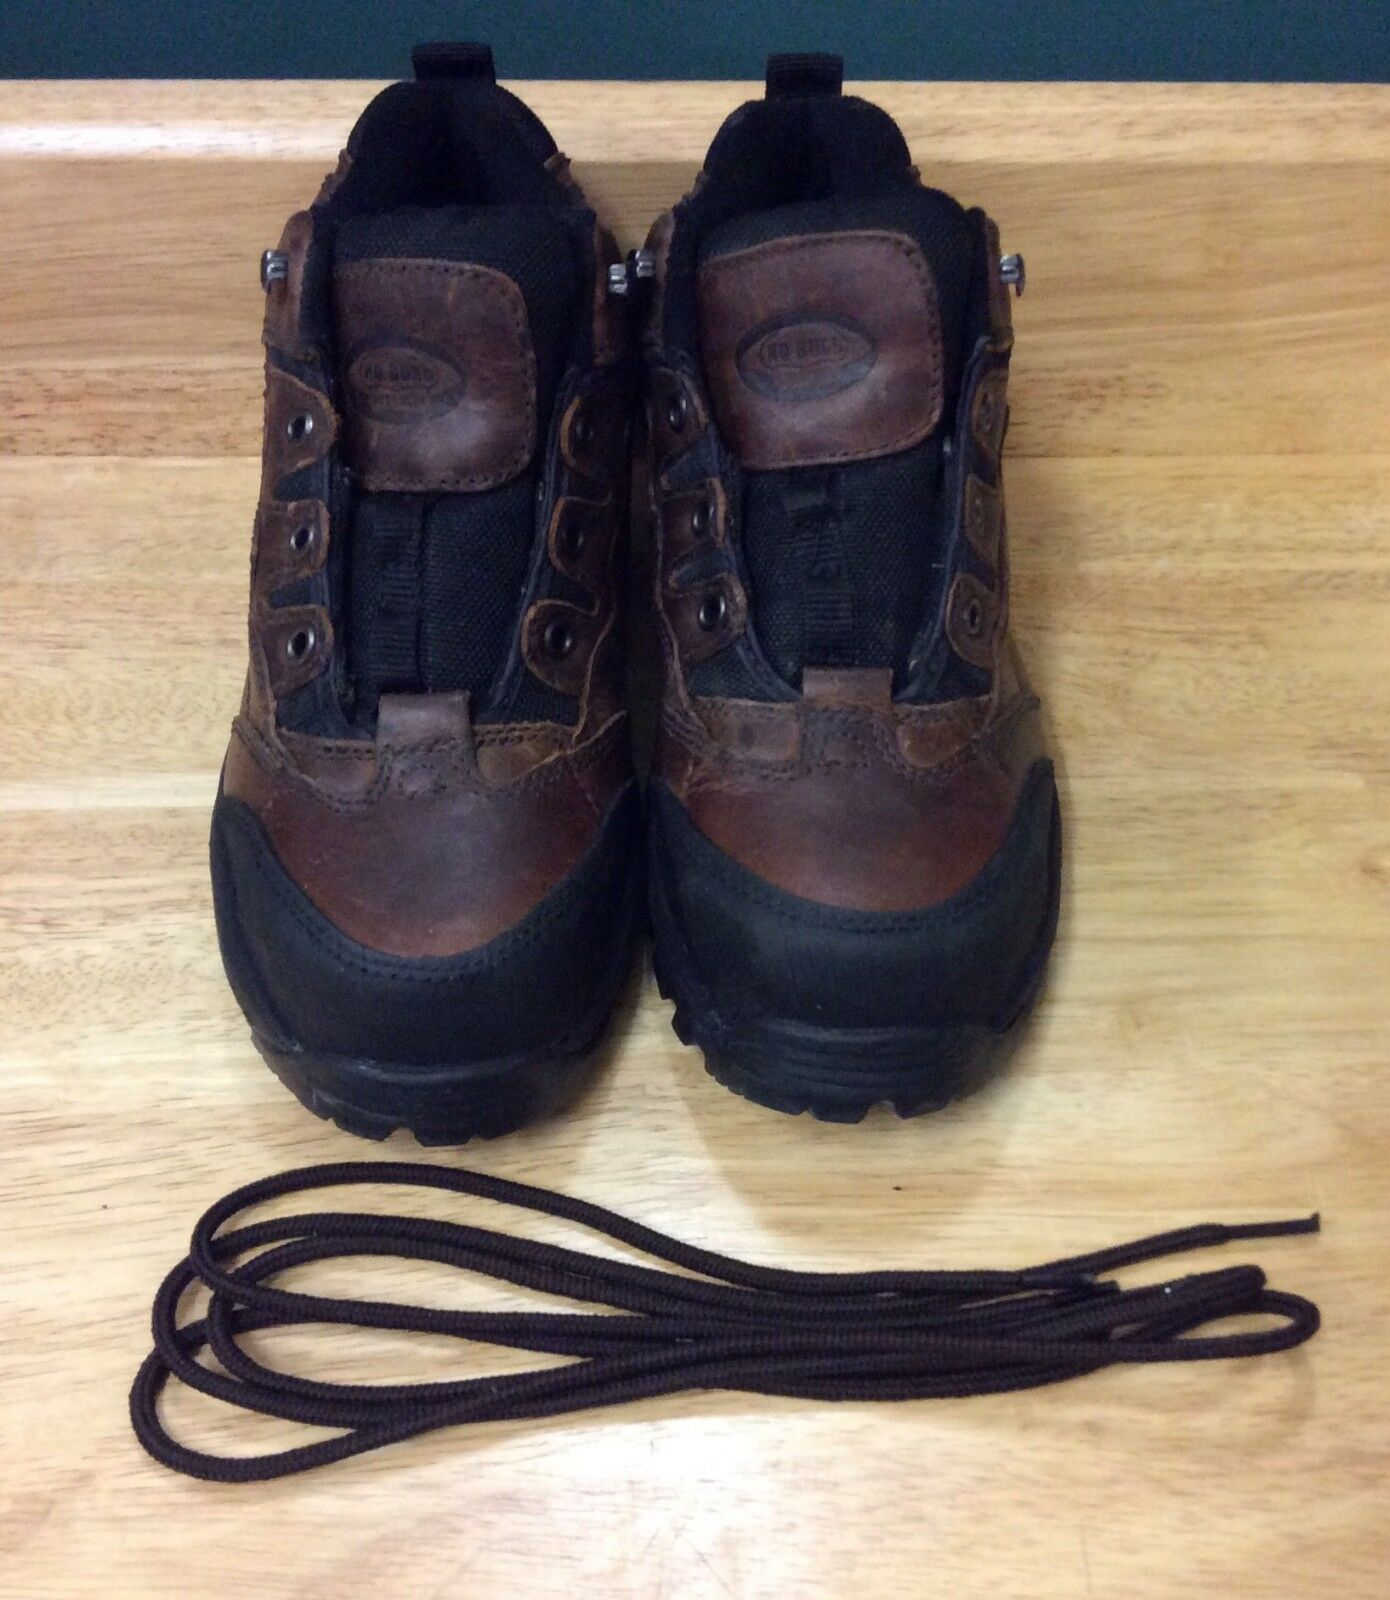 Vintage Femme No-Bull travail Toe Ware Steel Toe travail Cap Boots-UK taille 4-NOS c7902e